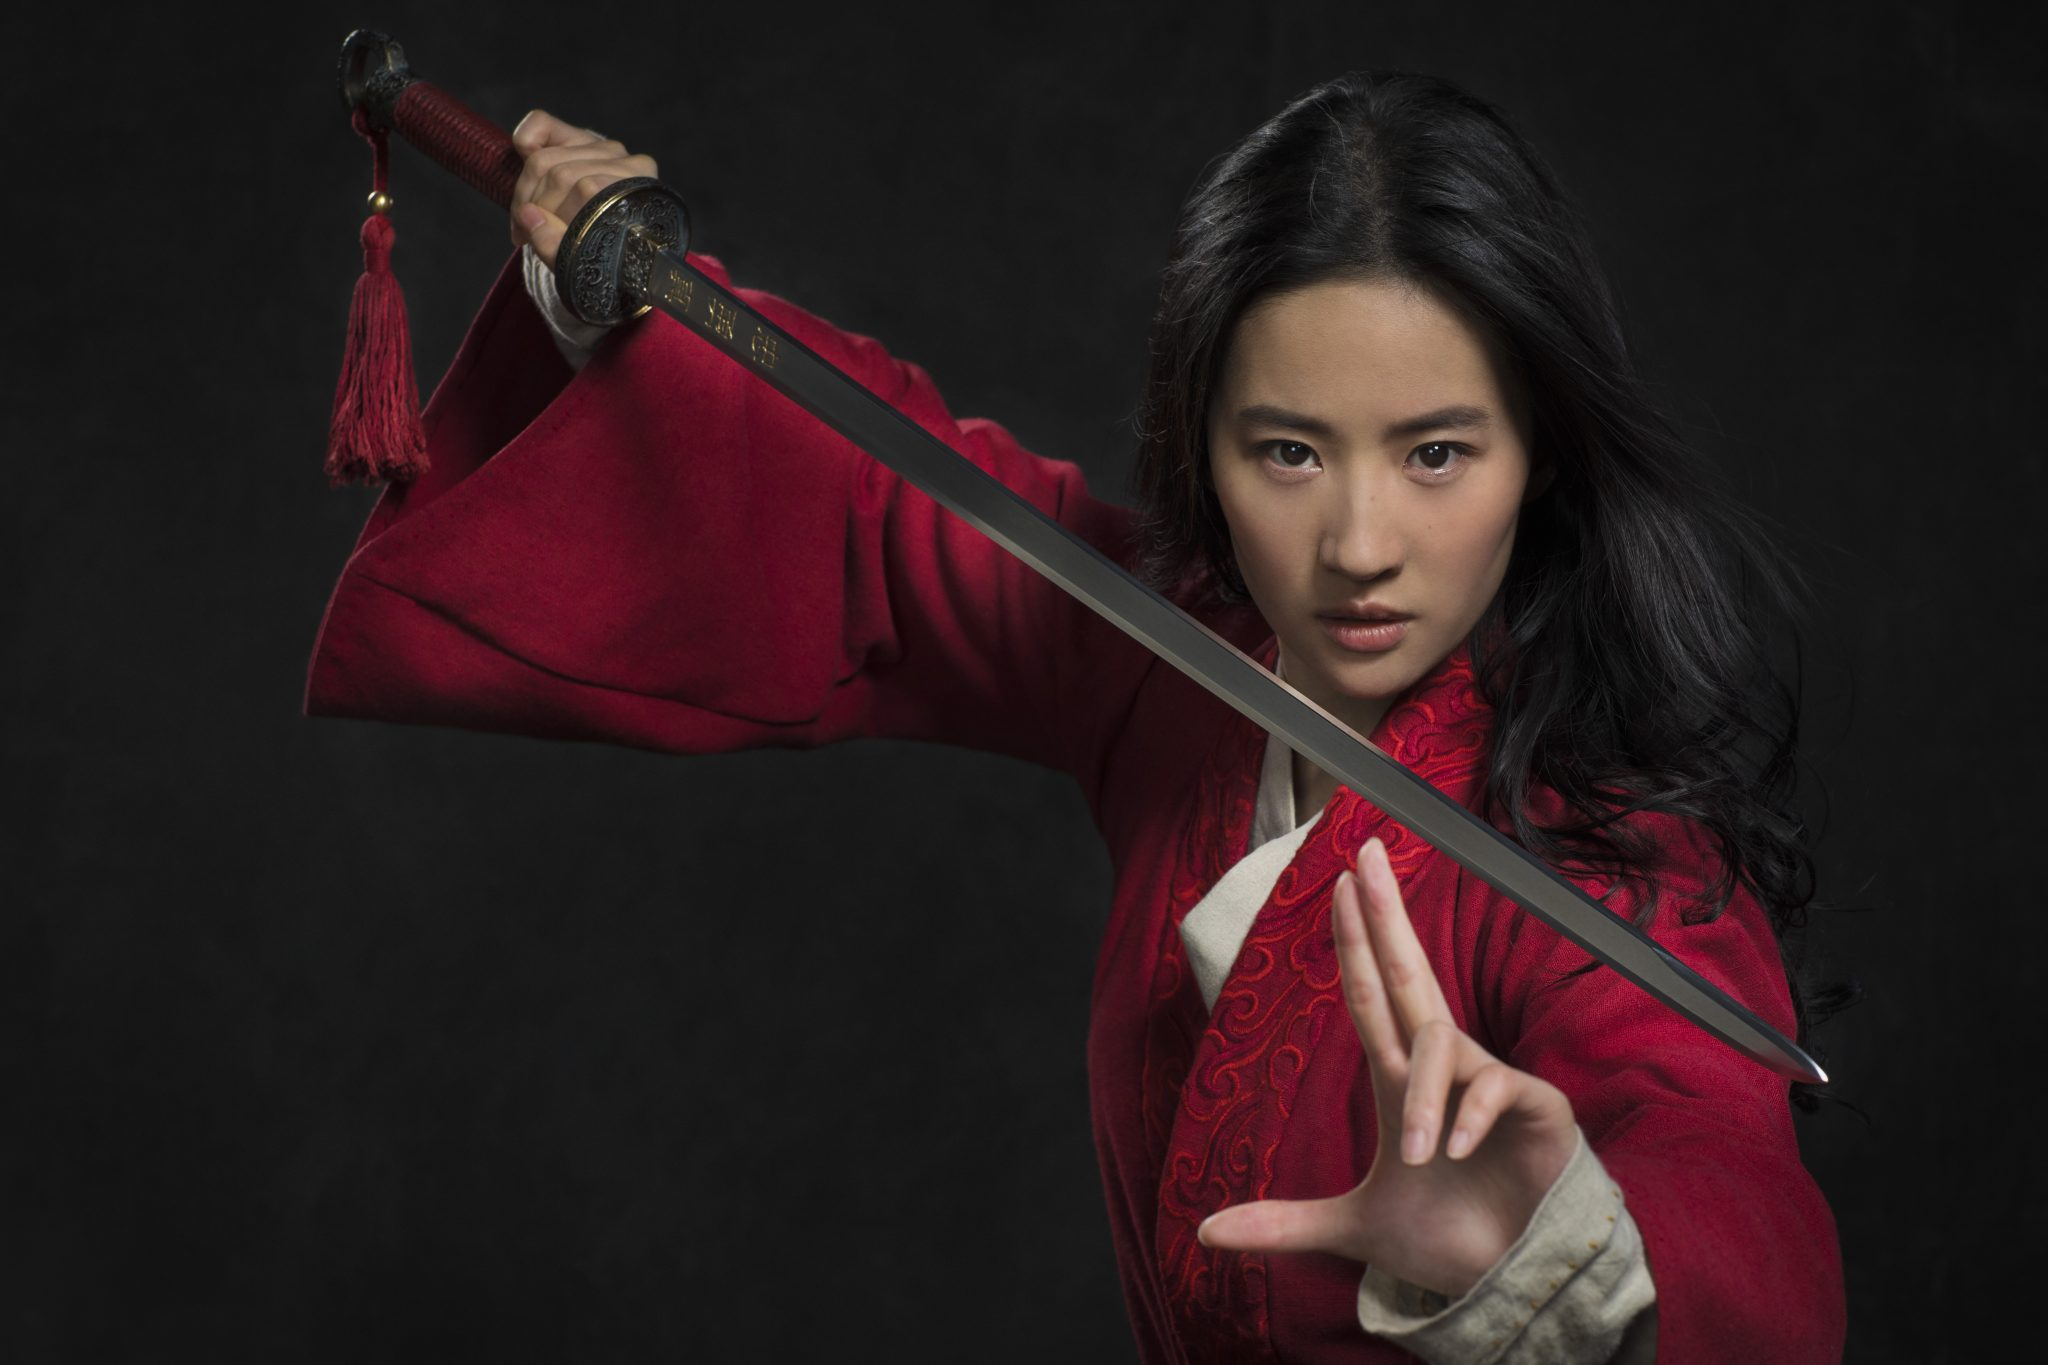 Disney Live Action Mulan Begins Filming First Look